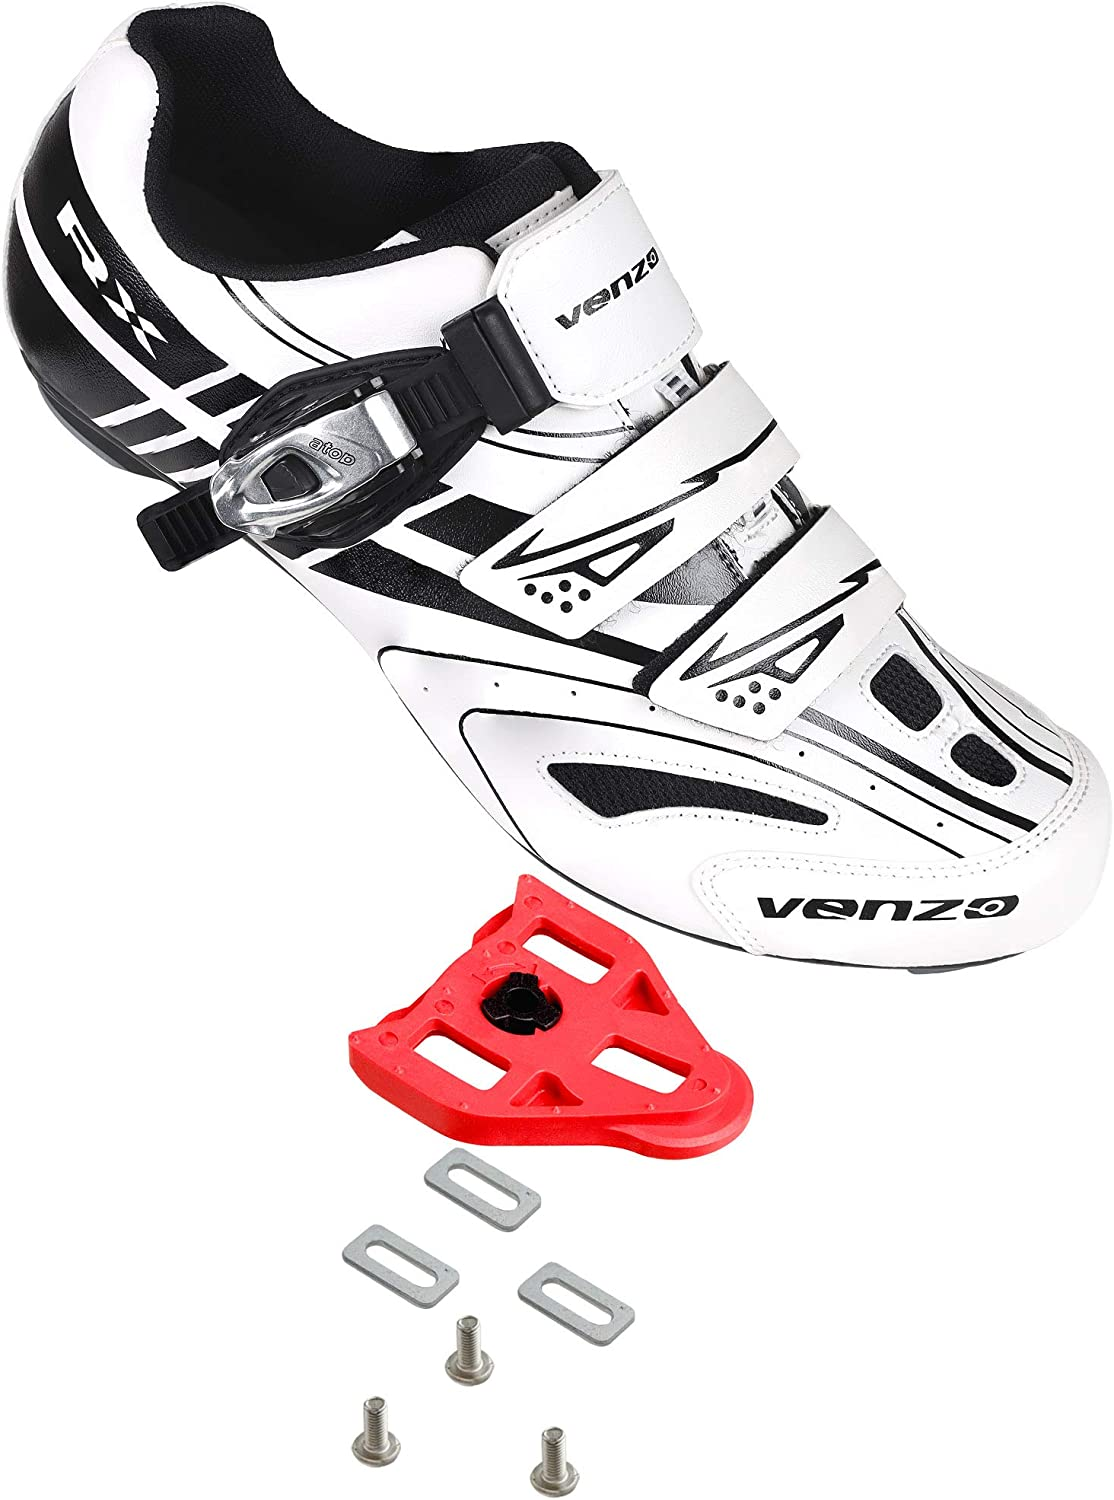 Venzo RX Bicycle Unisex New Shipping Free Shipping Men's or Women's Riding Road Quantity limited Cycling Sho